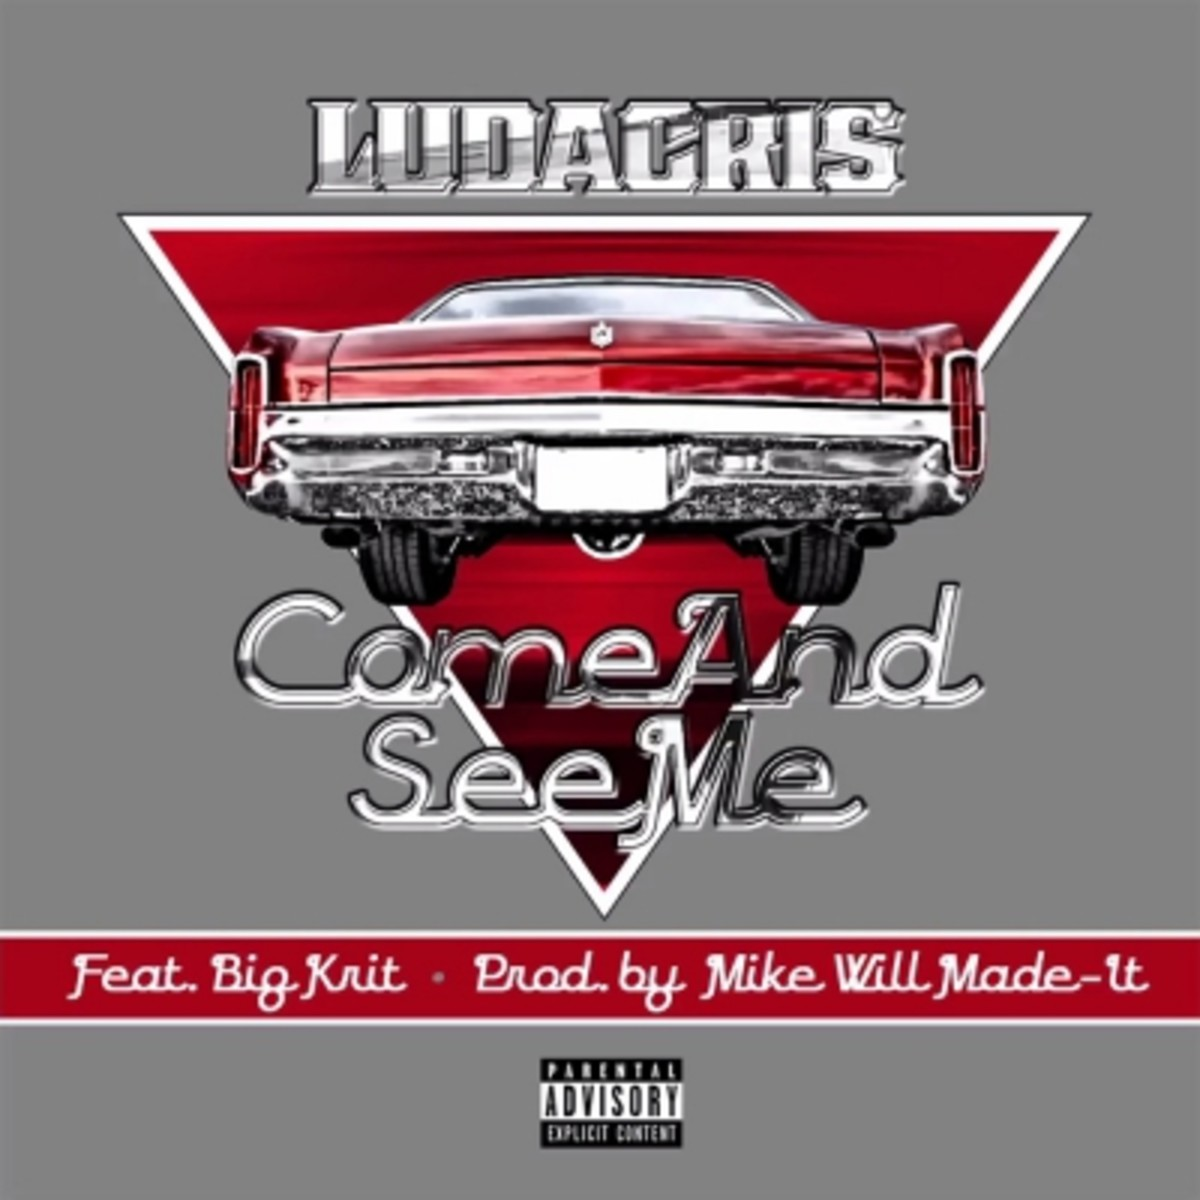 ludacris-come-and-see-me1.jpg